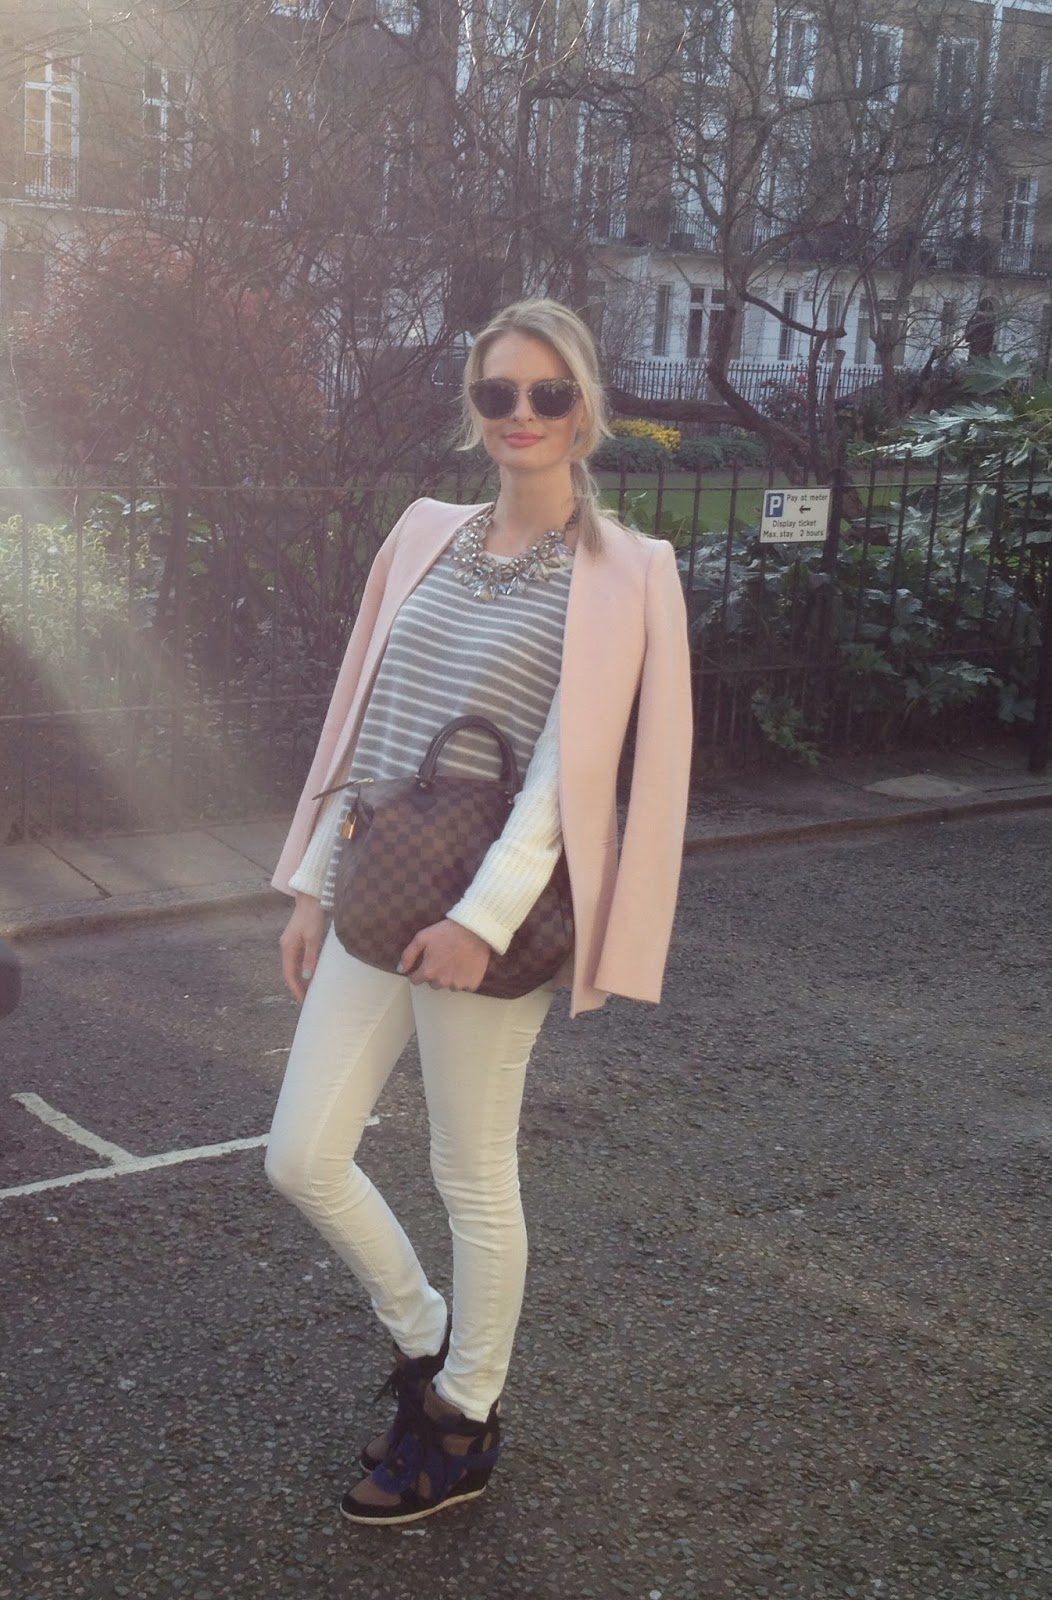 Spring, spring outfit, spring pastels, pink blazer, pastel pink blazer, street style, fashion blogger london, deutscher mode blogger, miu miu sunglasses, white jeans, j brand jeans, gap jumper, striped jumper, wedge trainers, ash wedge trainers, lv, louis vuitton, look book spring, look book 2014, zara look boog